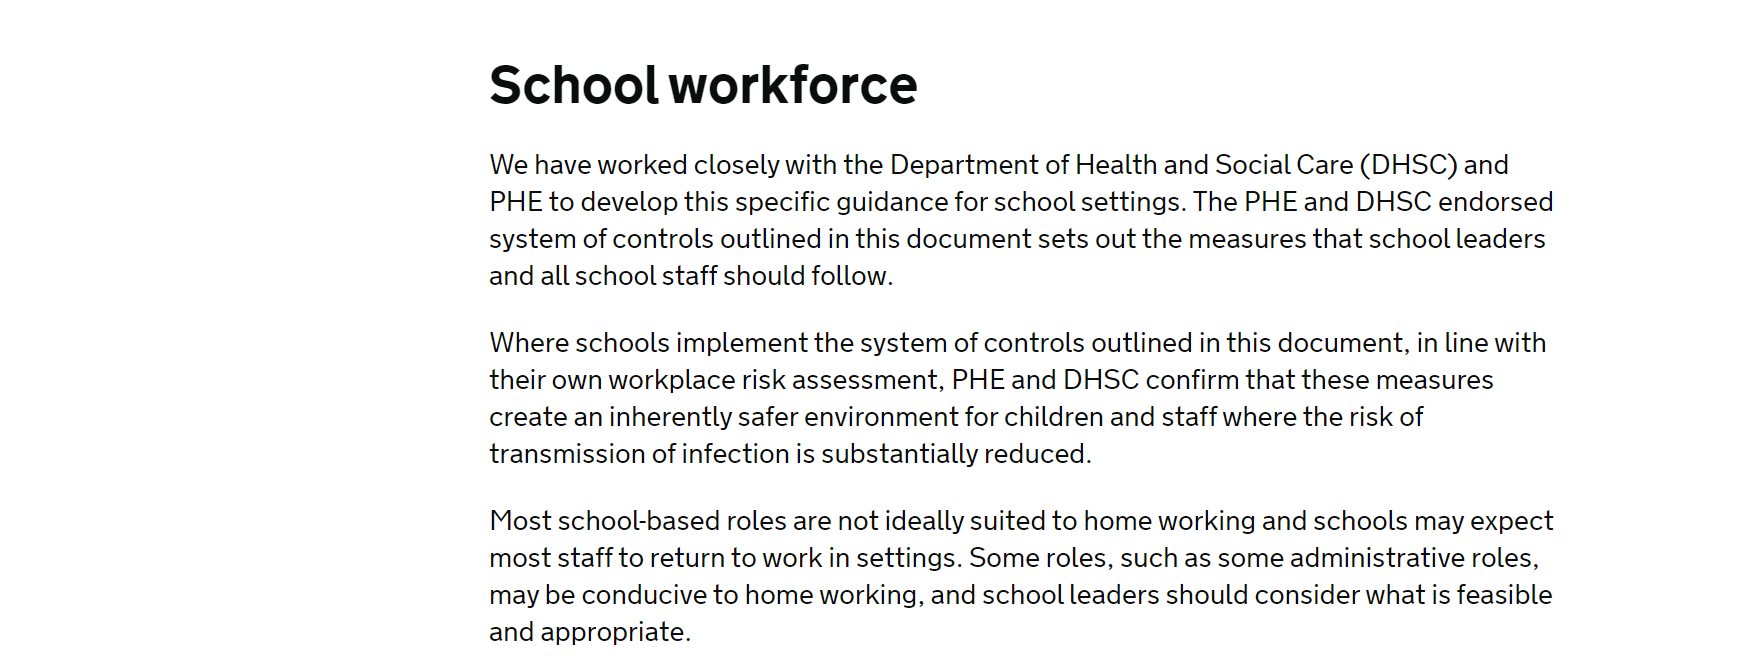 DfE guidance with detail on high risk settings removed